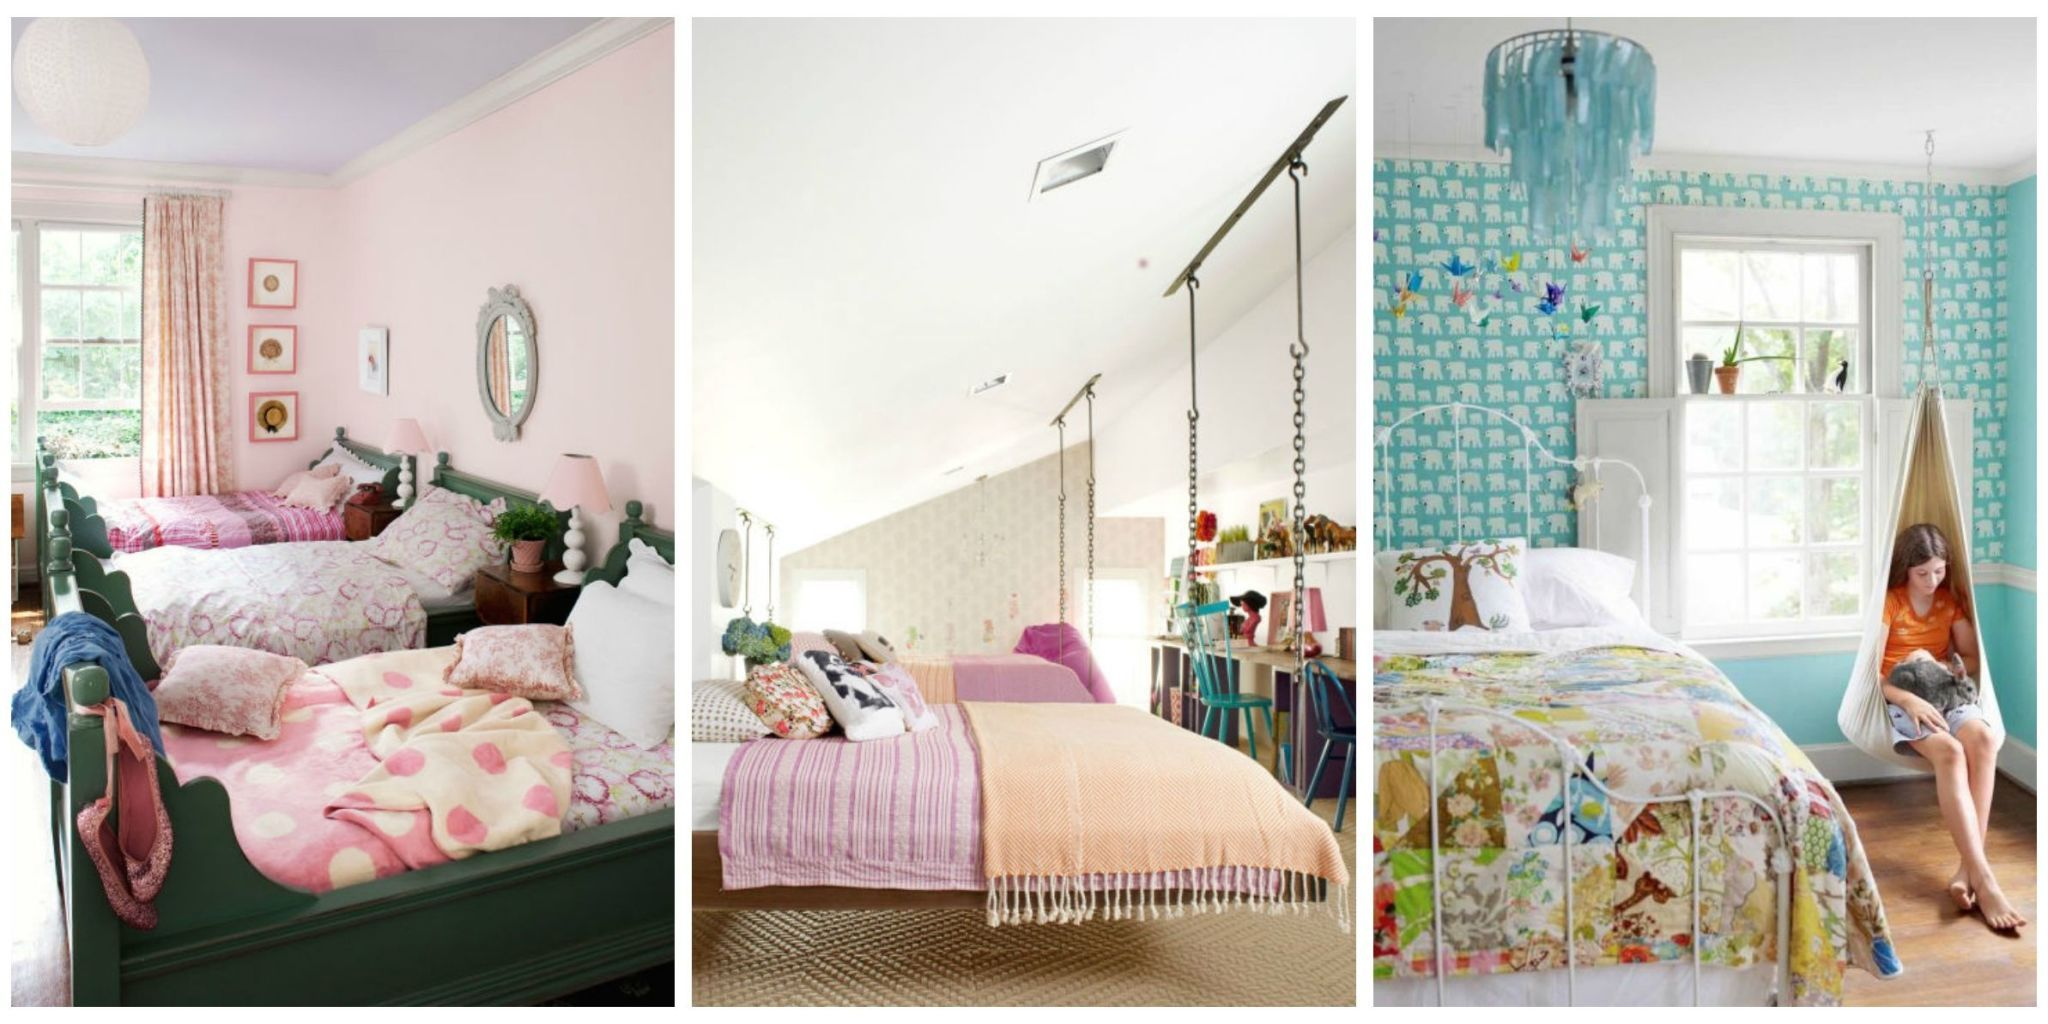 Your daughter will love a room filled with color patterns and cute accessories! Click through to find oh-so-pretty bedroom decorating ideas for girls of ... & 12 Fun Girl\u0027s Bedroom Decor Ideas - Cute Room Decorating for Girls